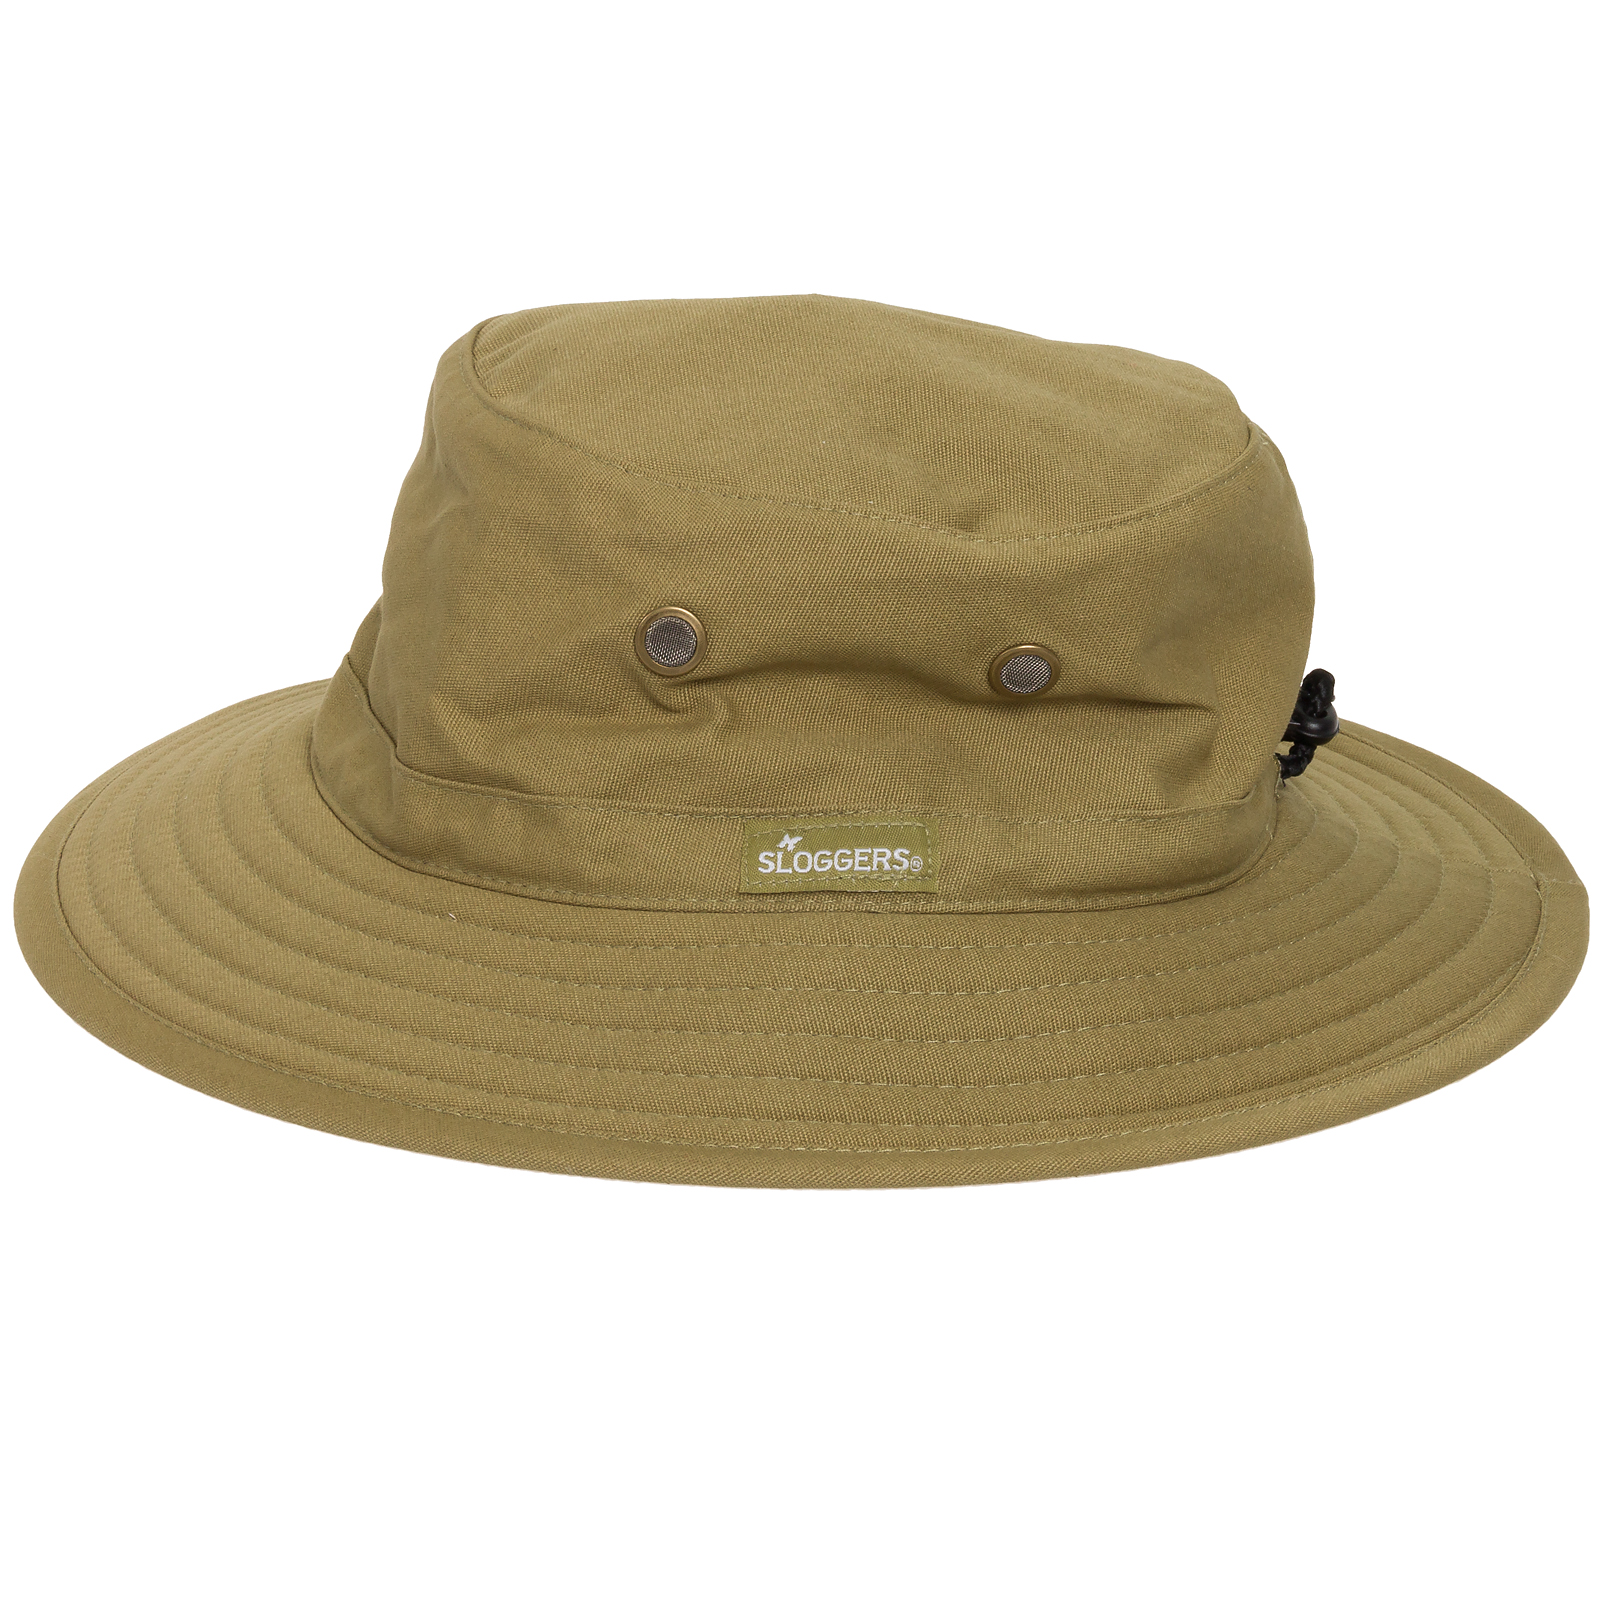 Sloggers men 39 s classic cotton upf 50 fishing bucket hat for Best fishing hat